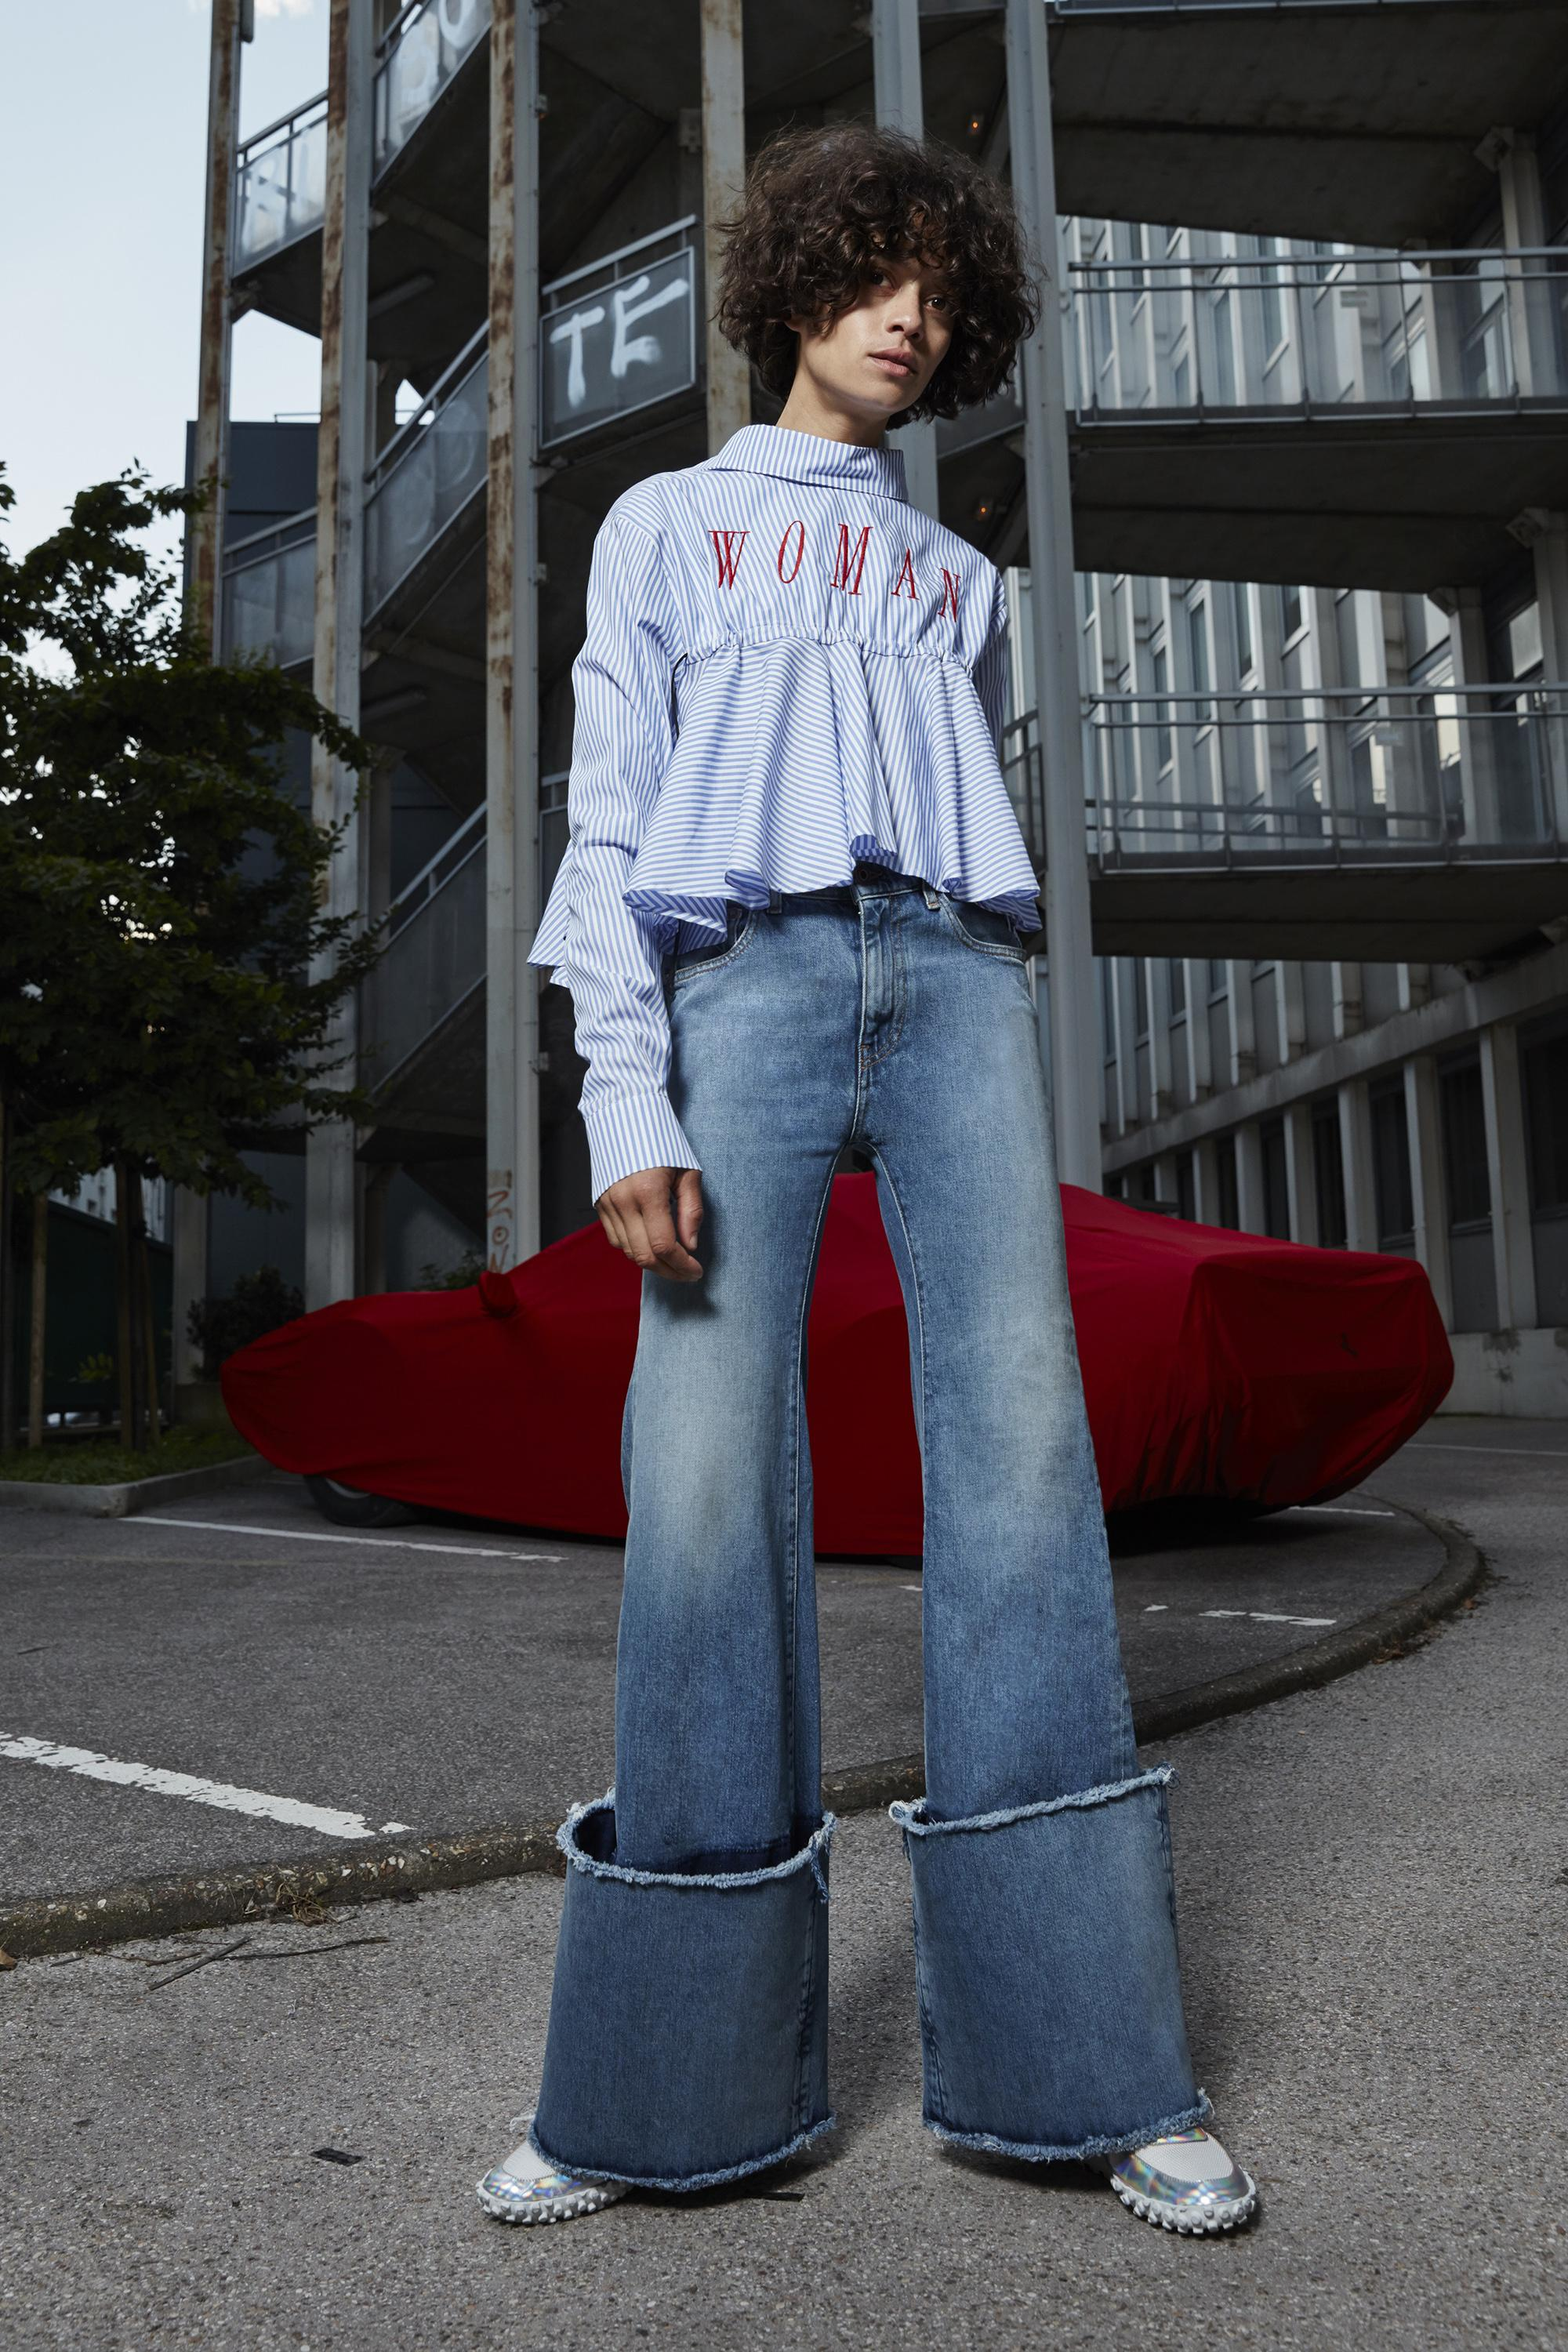 """A model poses in an urban landscape while wearing a frilly shirt with the word """"WOMAN"""" on the breast and wide-flared denim jeans."""